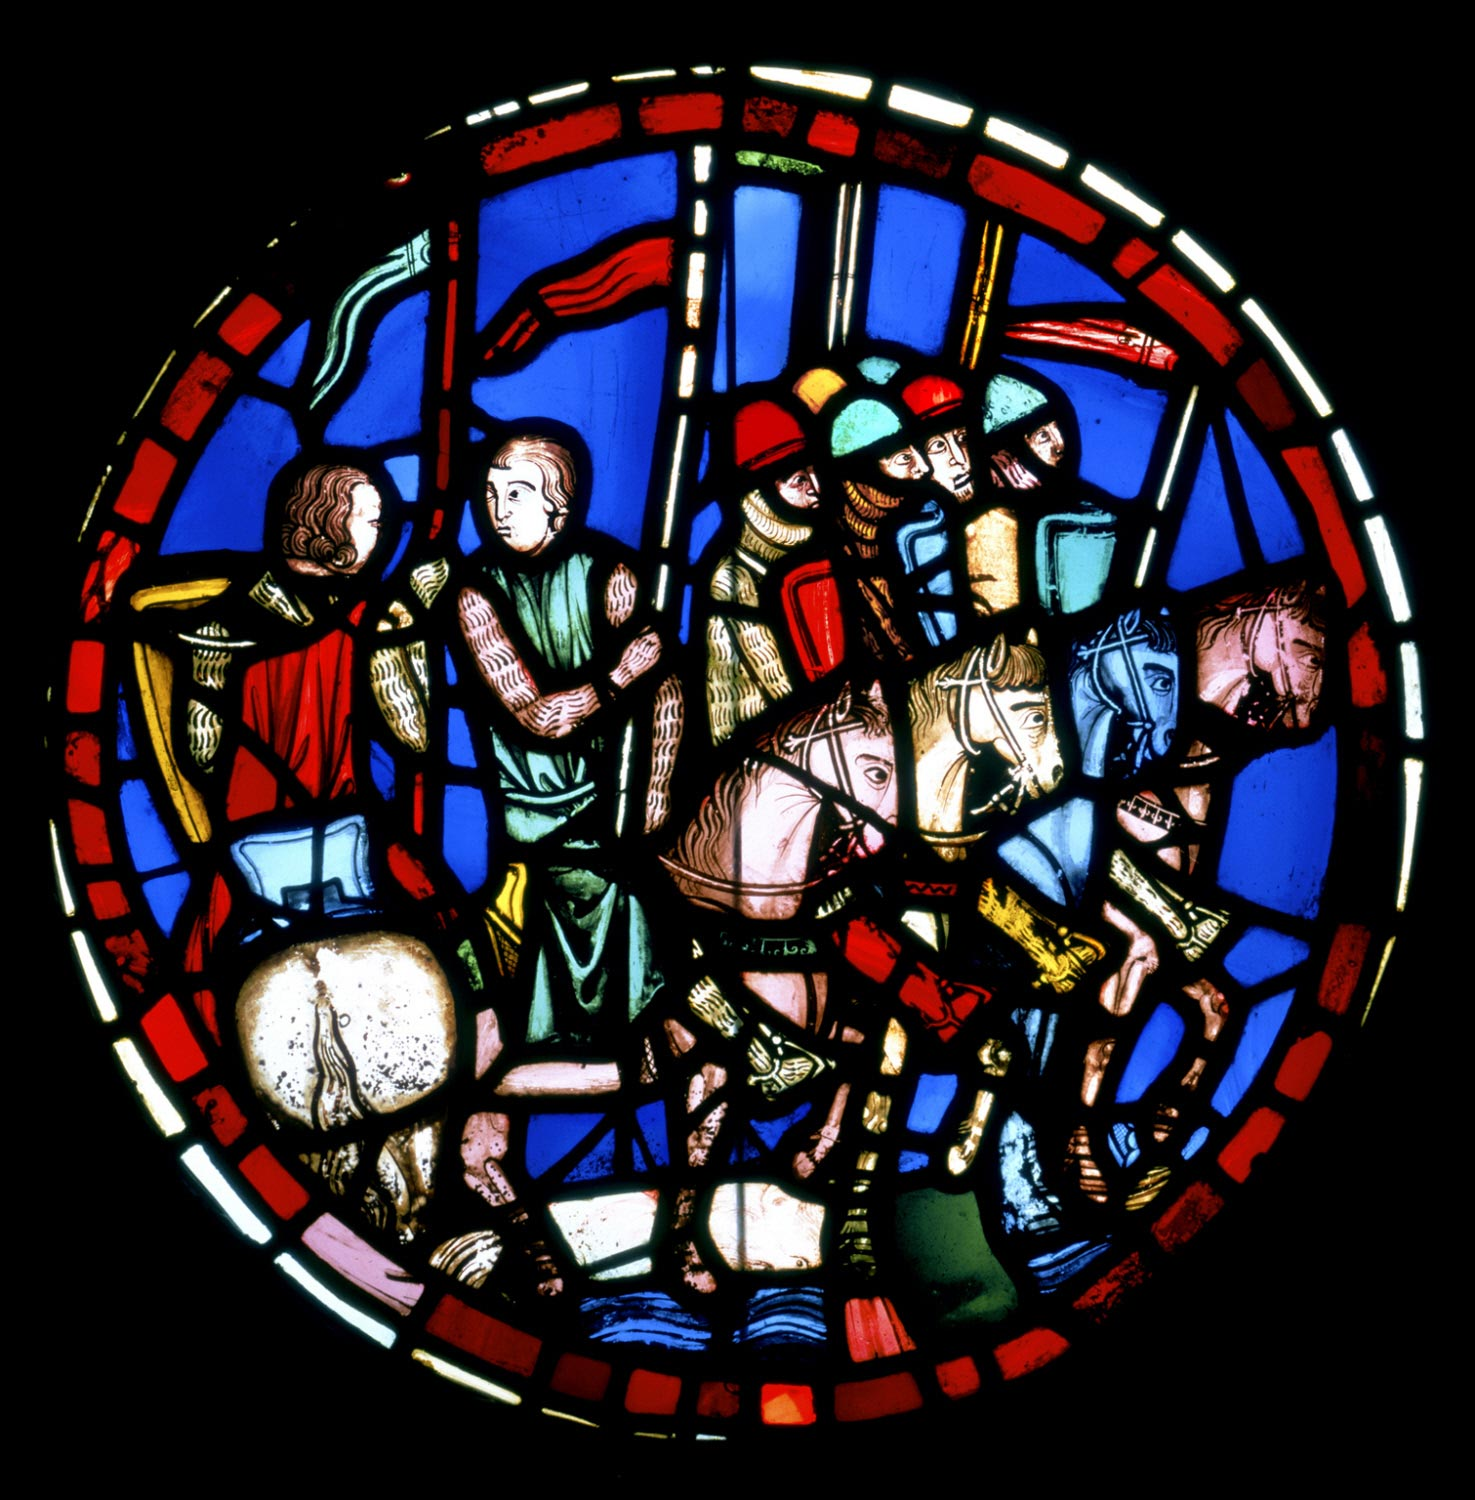 Rondel showing Holofernes's Army Crossing the Euphrates River, from the Sainte Chapelle, Paris